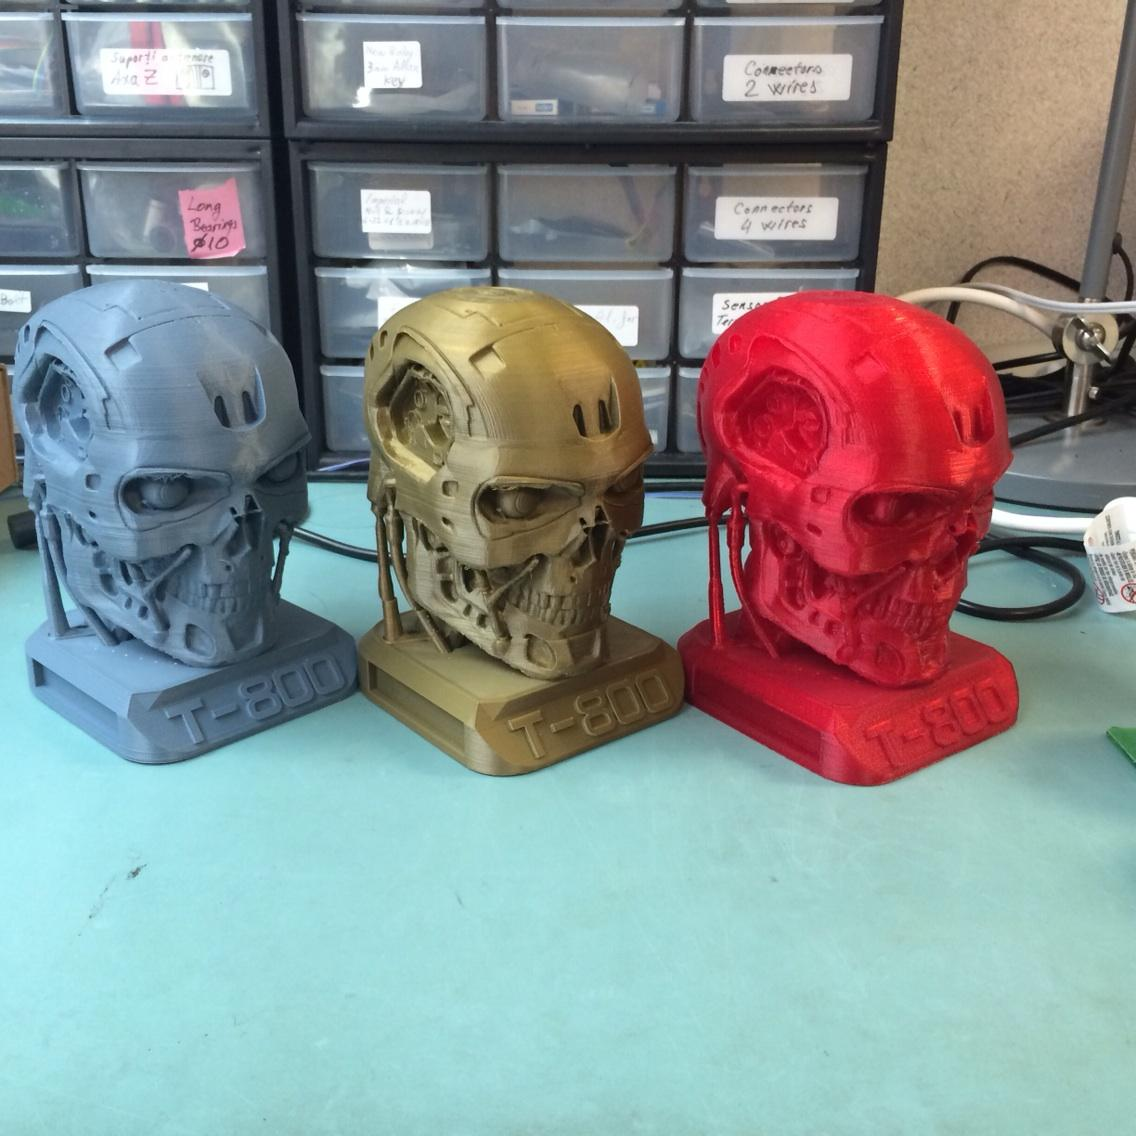 RT @MachinaCorp: The awesome T800 terminator as remixed by our Chris and printed on our 3D printers  - find it on Thingiverse. http://t.co/mBqpU9VwwZ